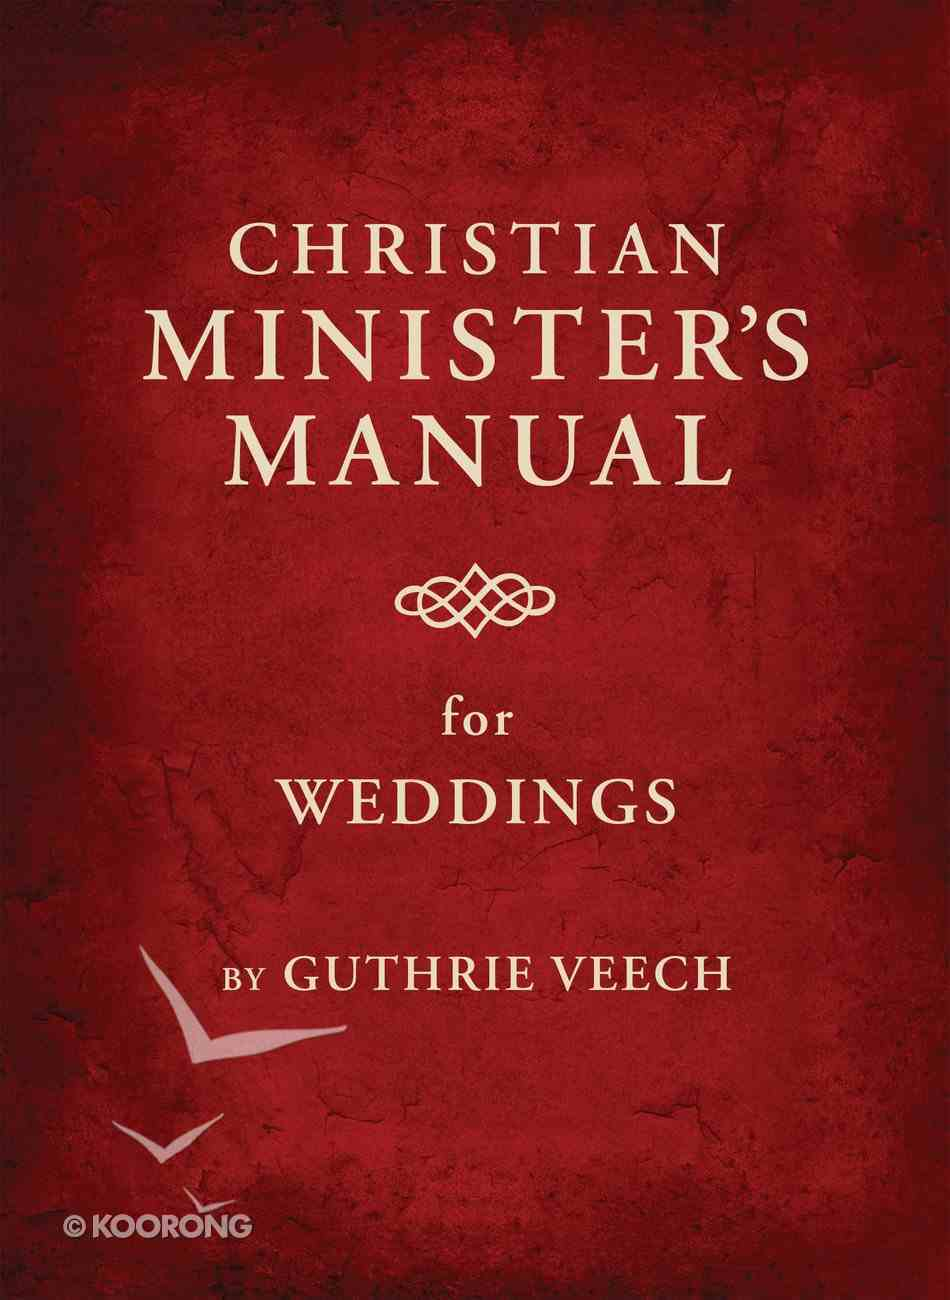 Christian Minister's Manual For Weddings eBook